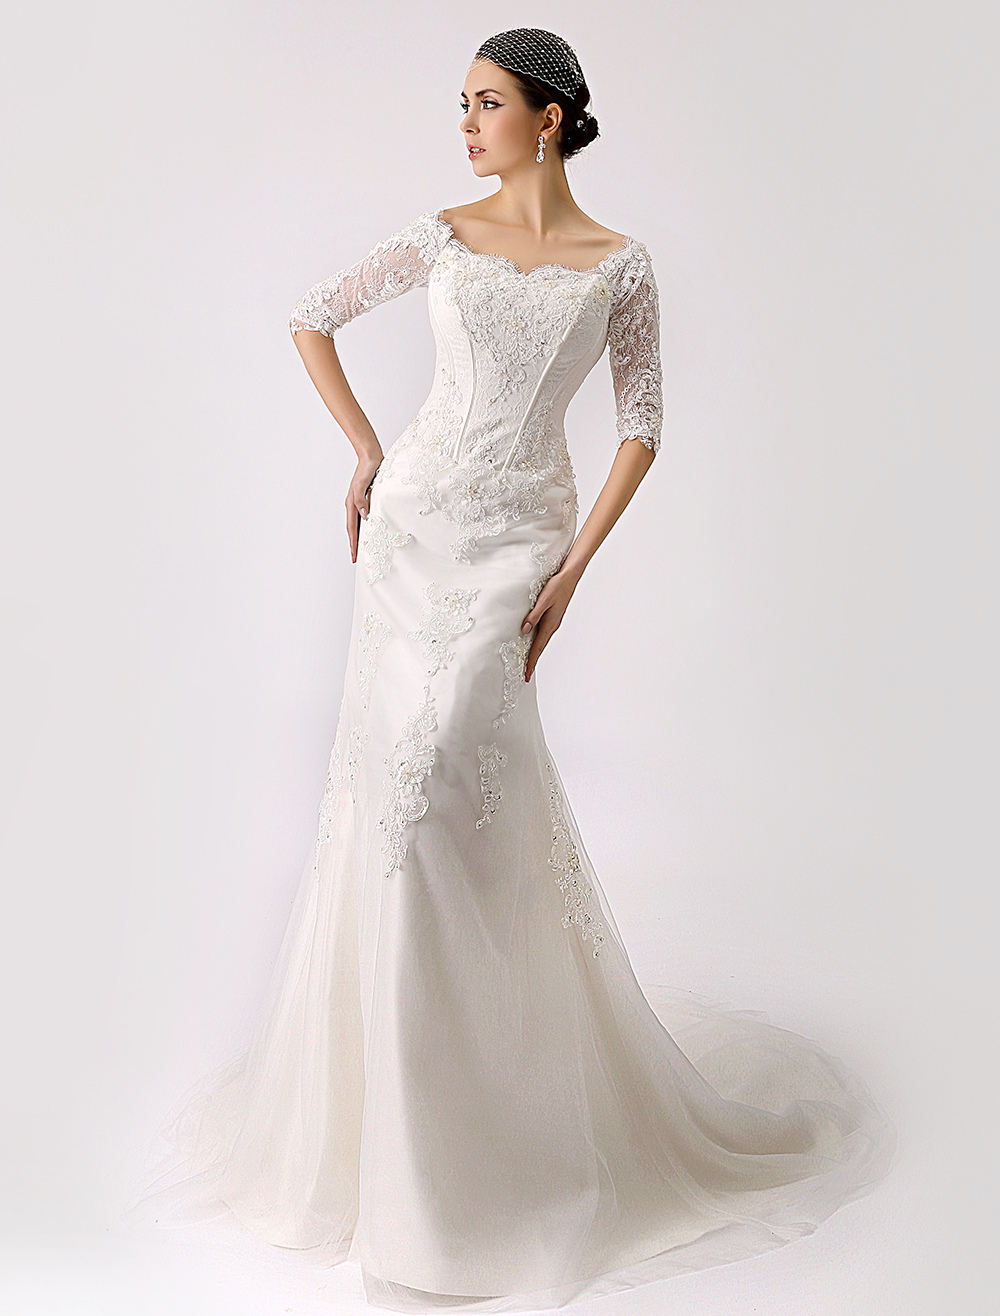 2018 Vintage Inspired Off the Shoulder Mermaid Lace Wedding Gown Milanoo